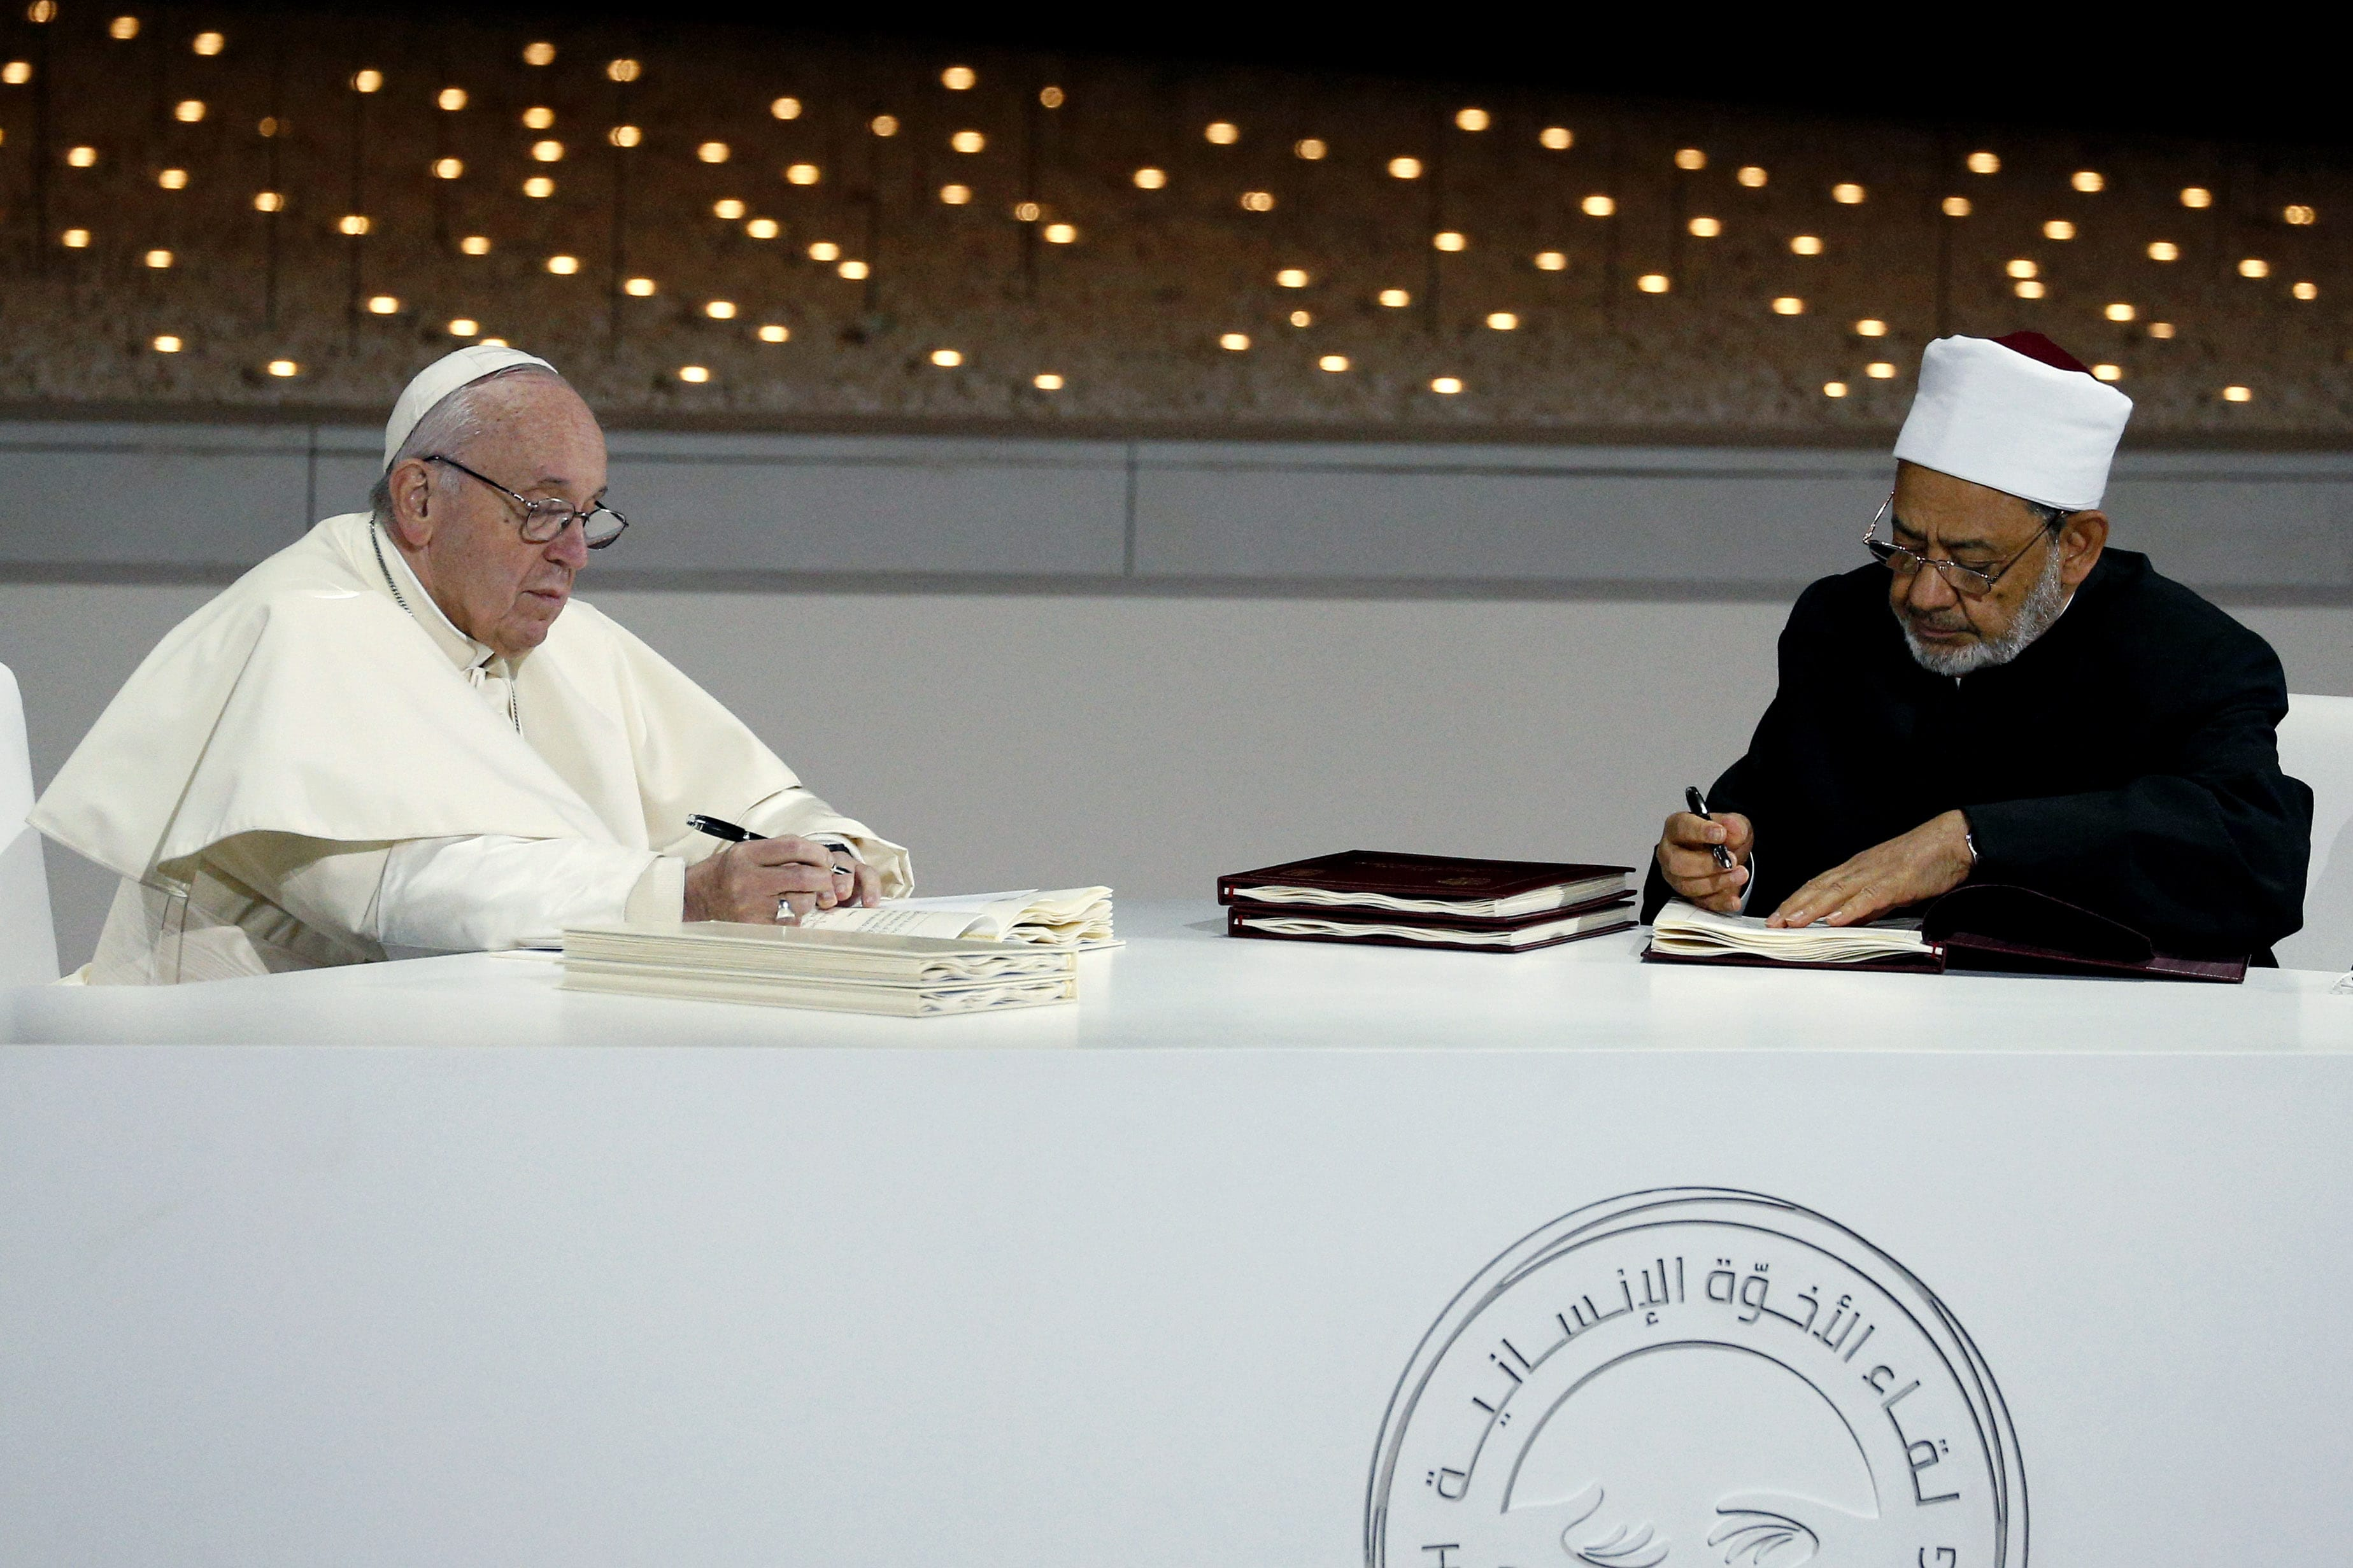 Pope Francis and Sheik Ahmad el-Tayeb, grand imam of Egypt's al-Azhar mosque and university, sign documents during an interreligious meeting at the Founder's Memorial in Abu Dhabi, United Arab Emirates on 4 February 2019. The Holy Father and Sheik el-Tayeb stepped into a theological debate on the will of God toward religions when they signed a document on